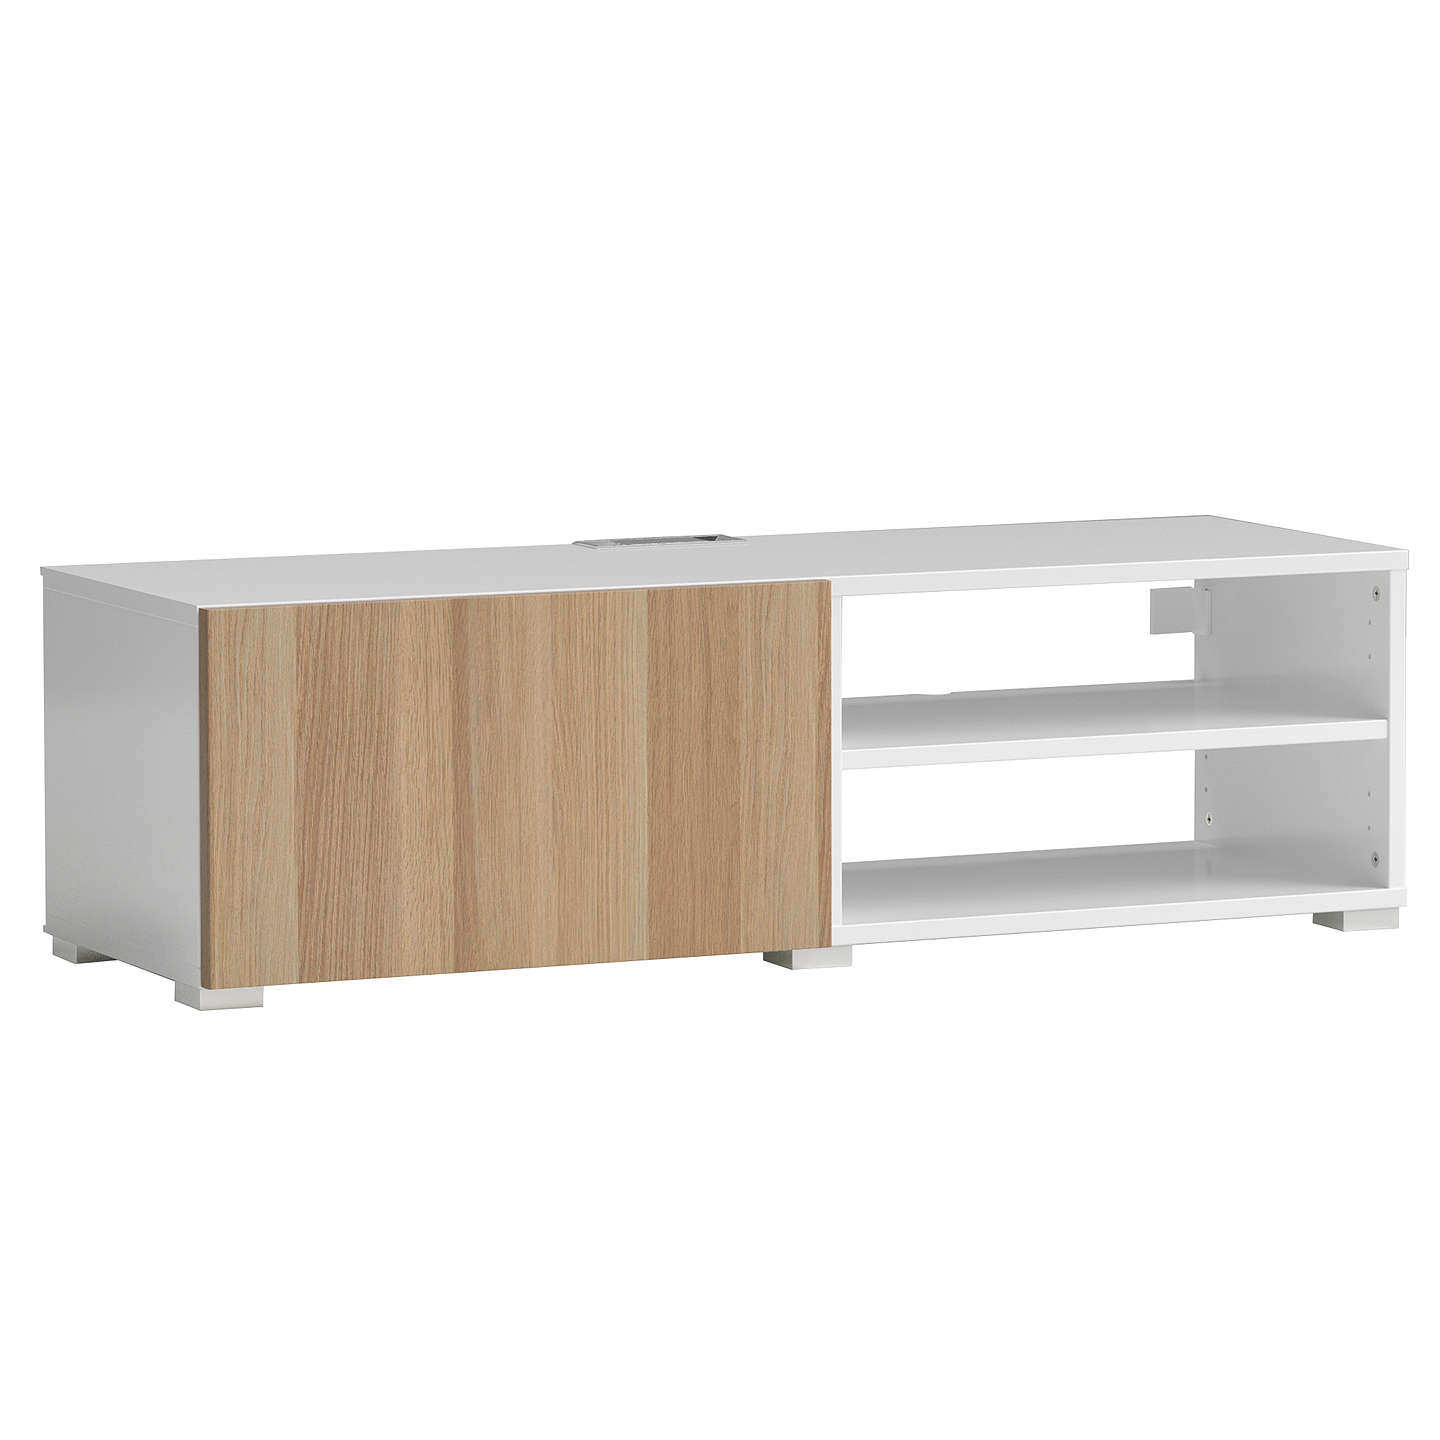 BuyHouse by John Lewis Mix it Media Unit - White frame / Oak door Online at johnlewis.com